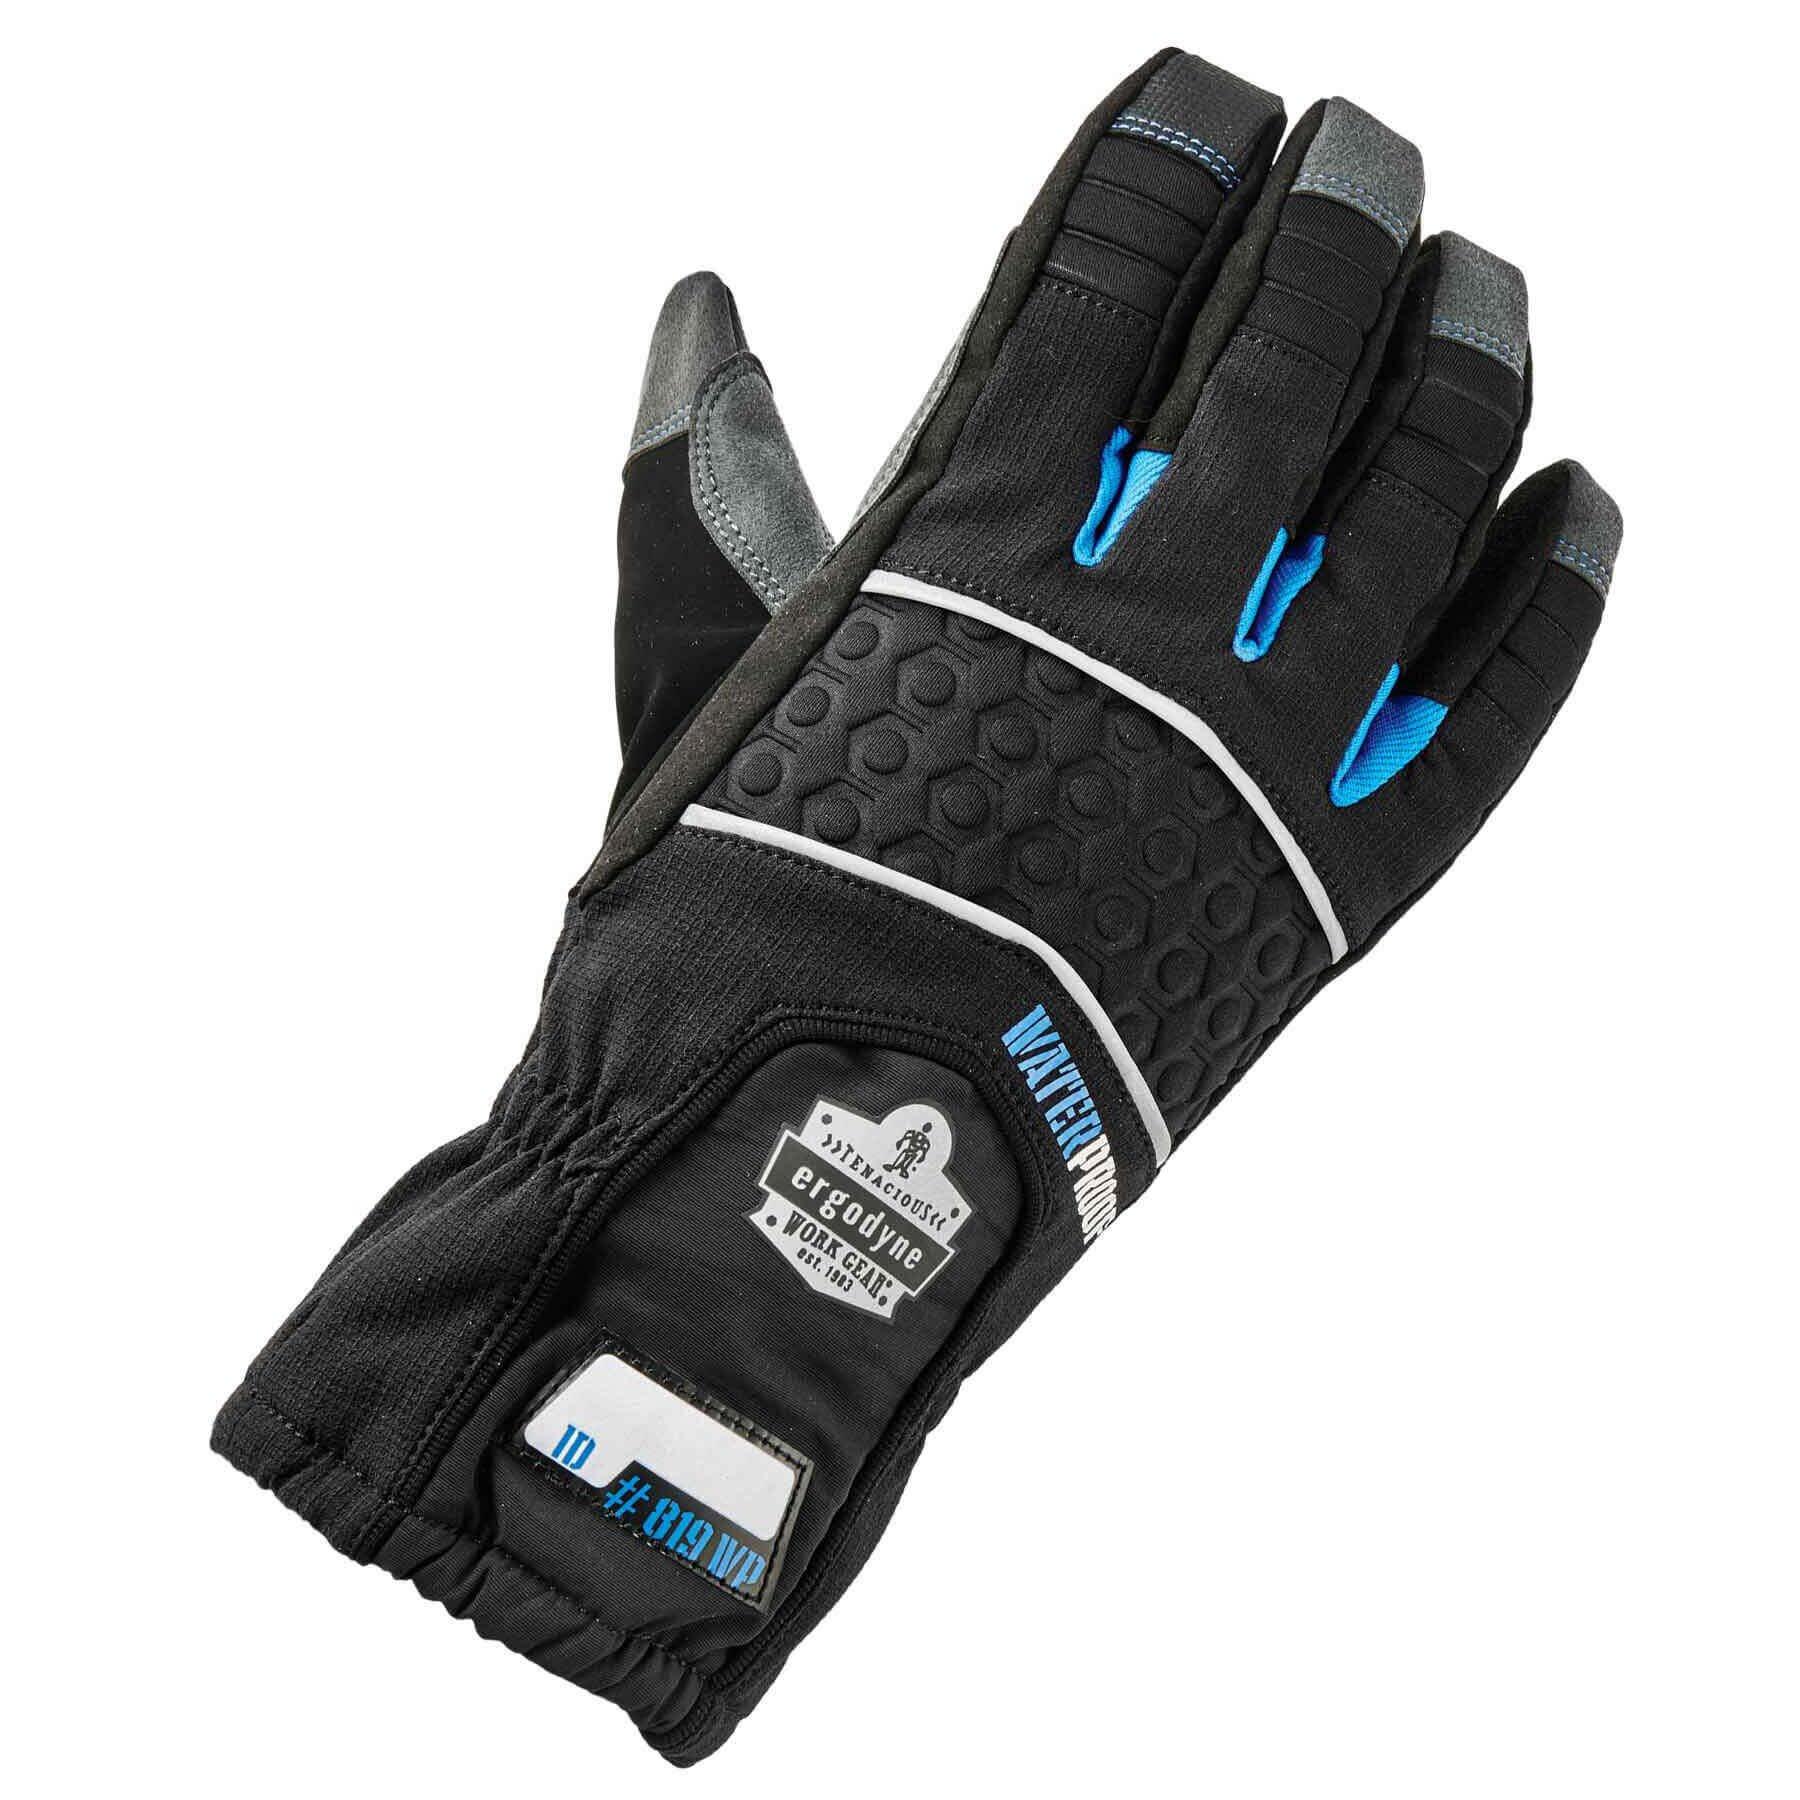 Ergodyne ProFlex 819WP Extreme Thermal Waterproof Insulated Work Gloves, Touchscreen Capable, Black, Small